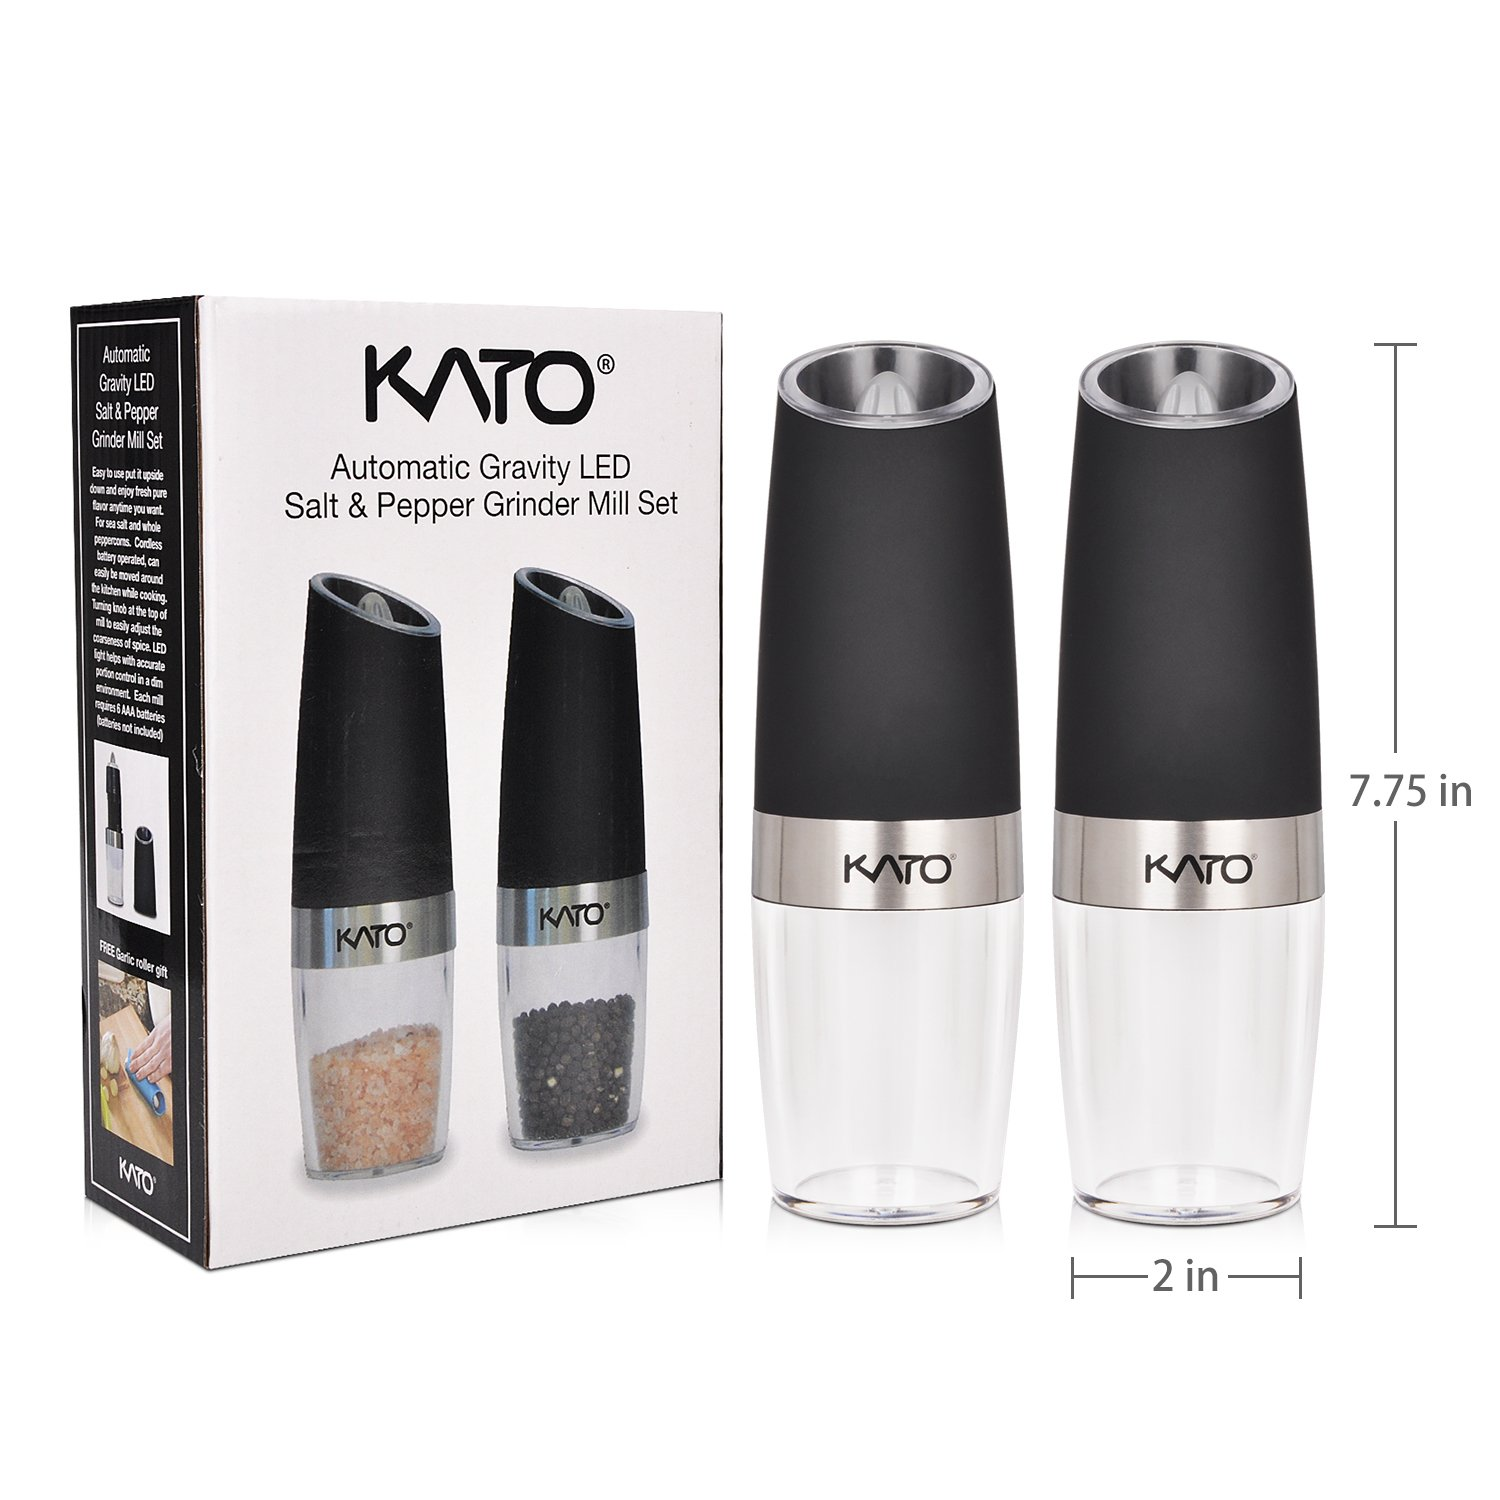 Kato Gravity Electric Salt and Pepper Grinder Set of 2 - Automatic Operation, Battery Powered, Blue LED Light - Adjustable Ceramic Grinding Coarseness Mills with Free Garlic Peeler, Black